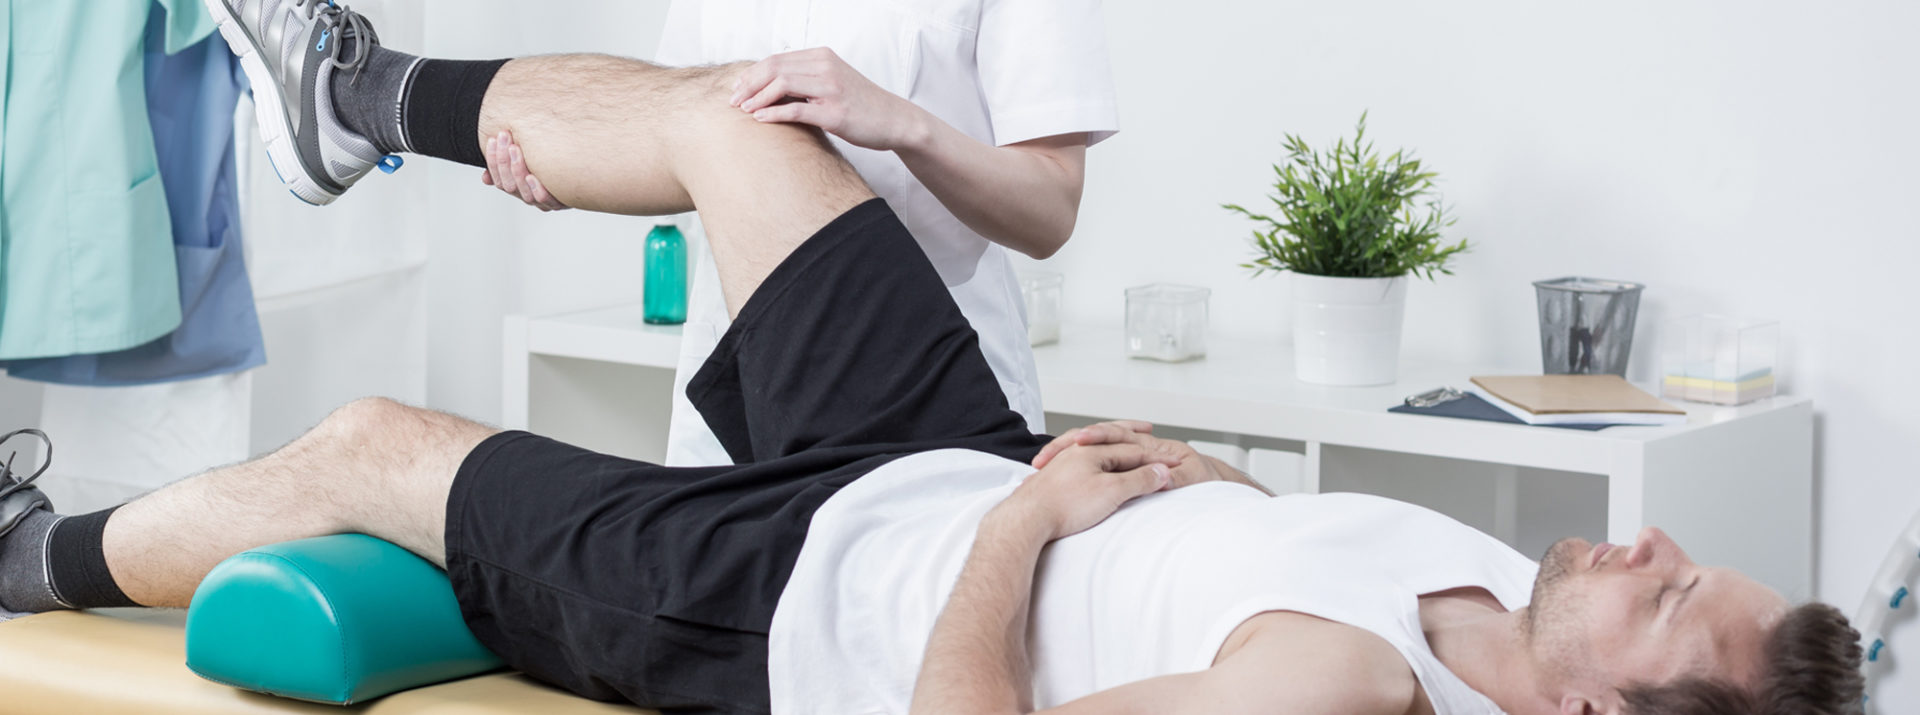 We offer highly specialized treatments